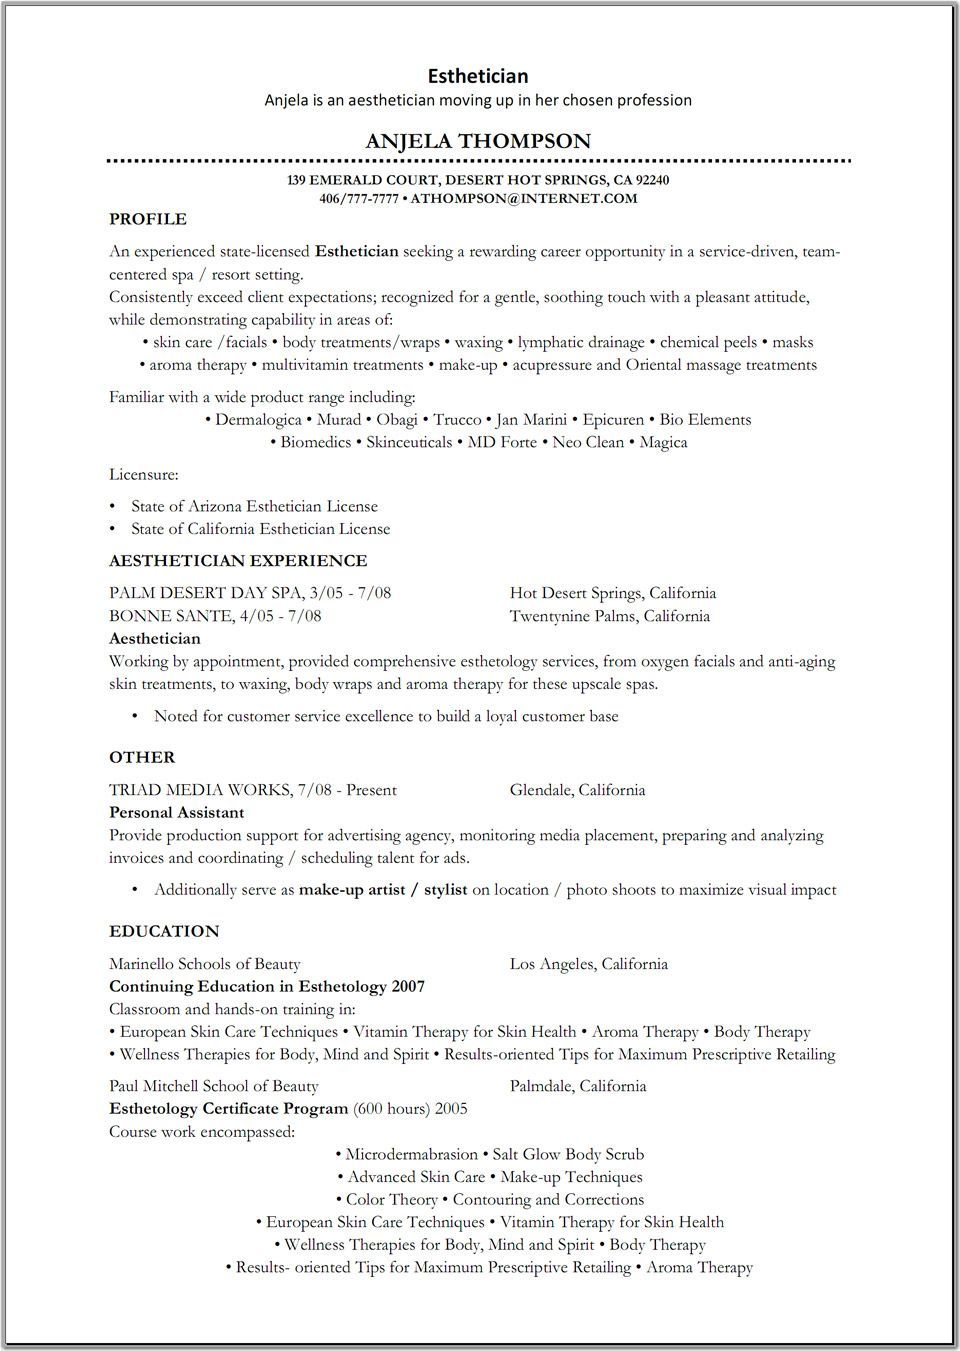 Resume Examples Me Nbspthis Website Is For Sale Nbspresume Examples Resources And Information Cover Letter For Resume Esthetician Resume Resume Examples